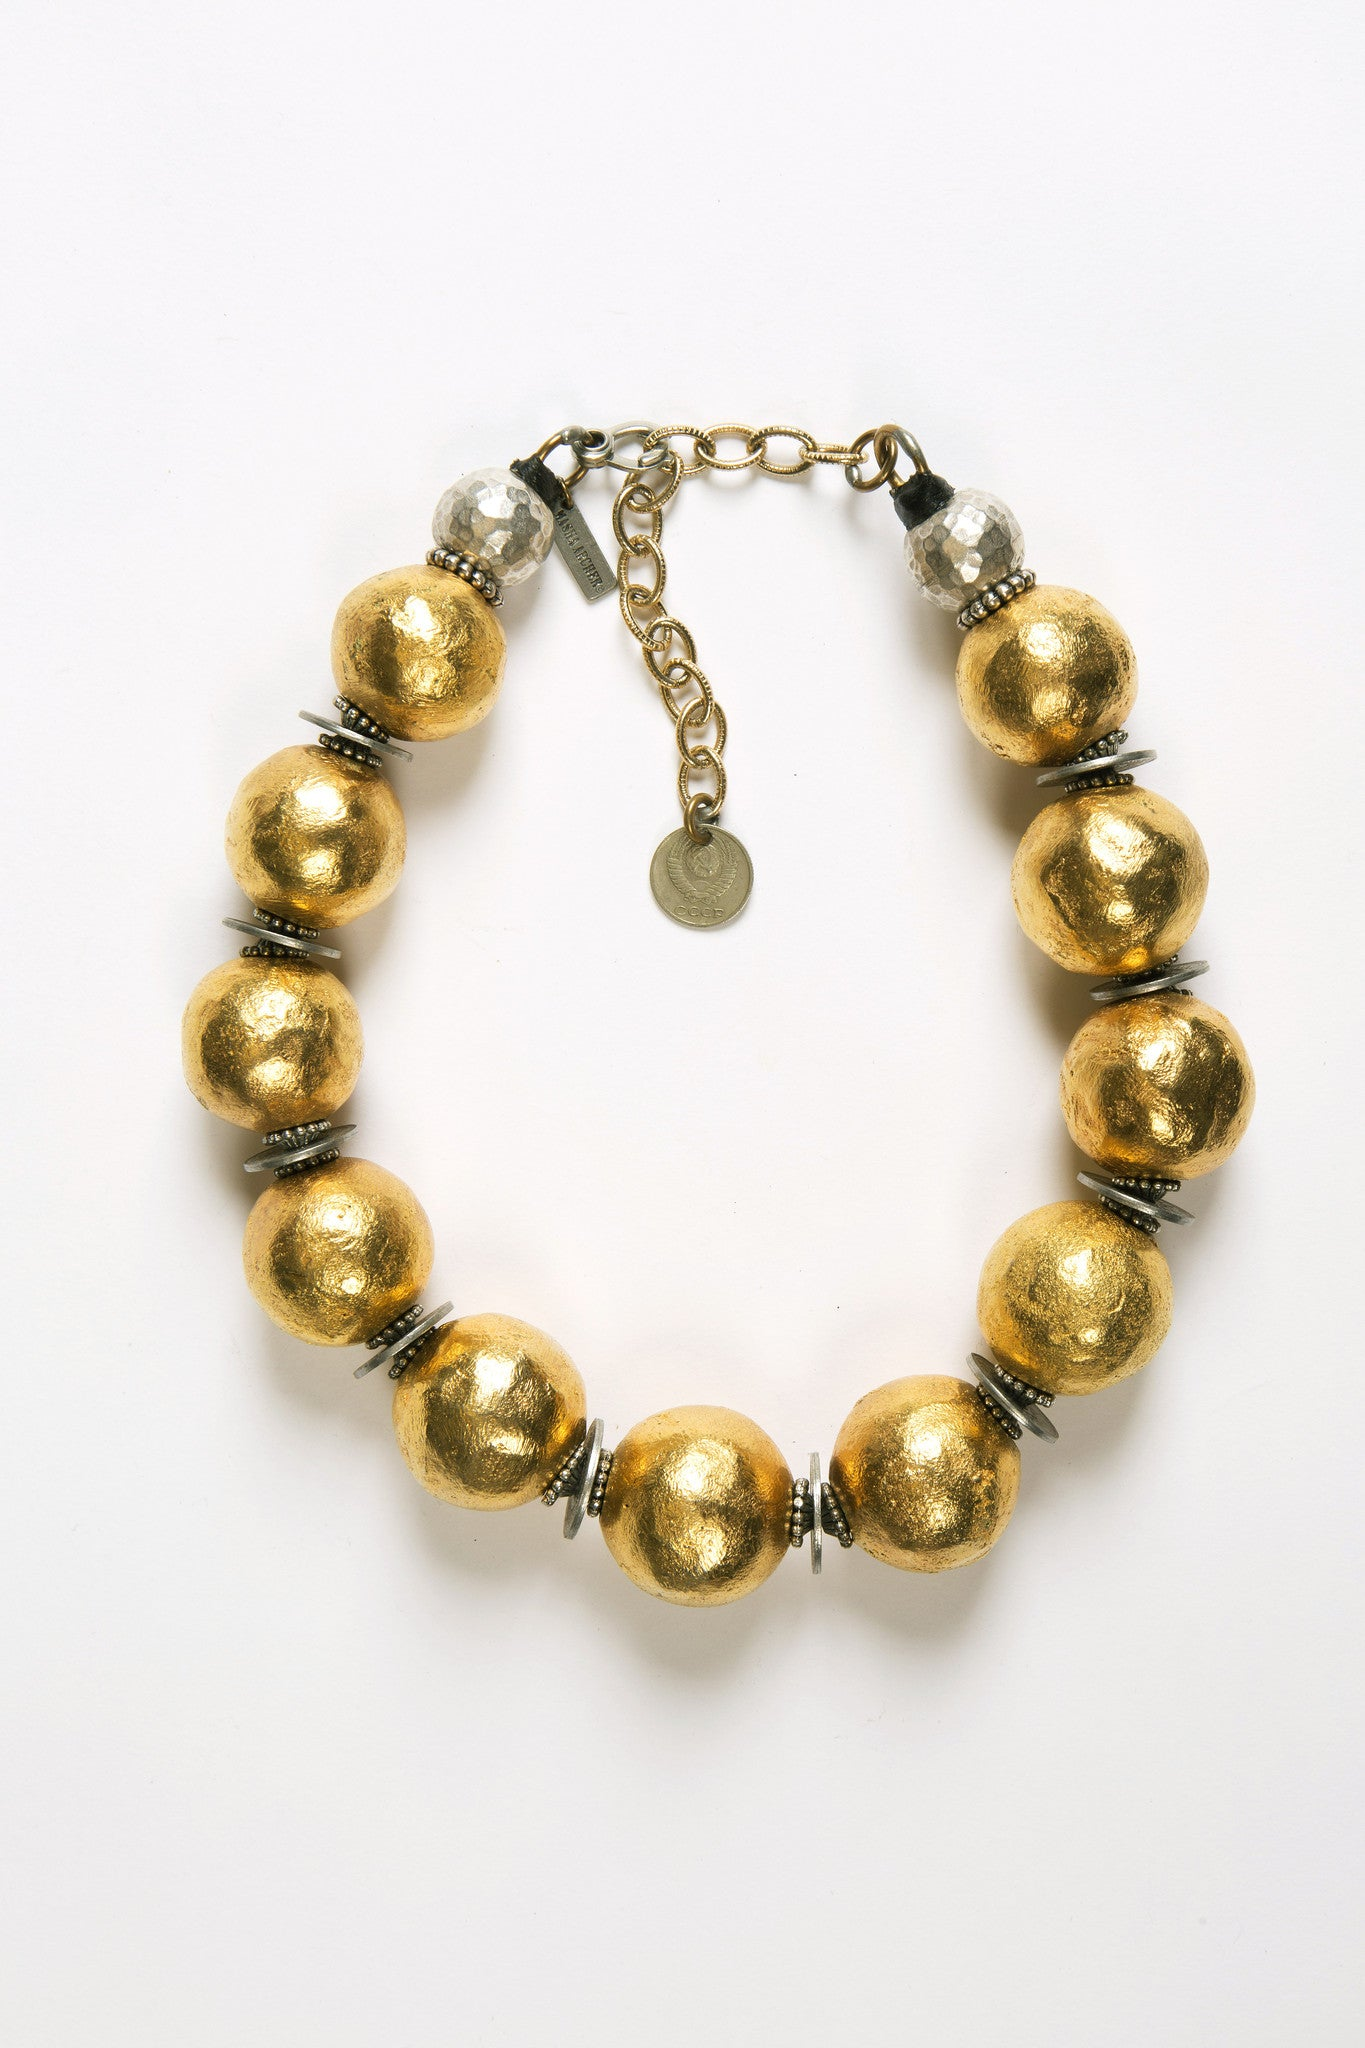 Cameroon Gold Wreath Necklace - Inspired Luxe